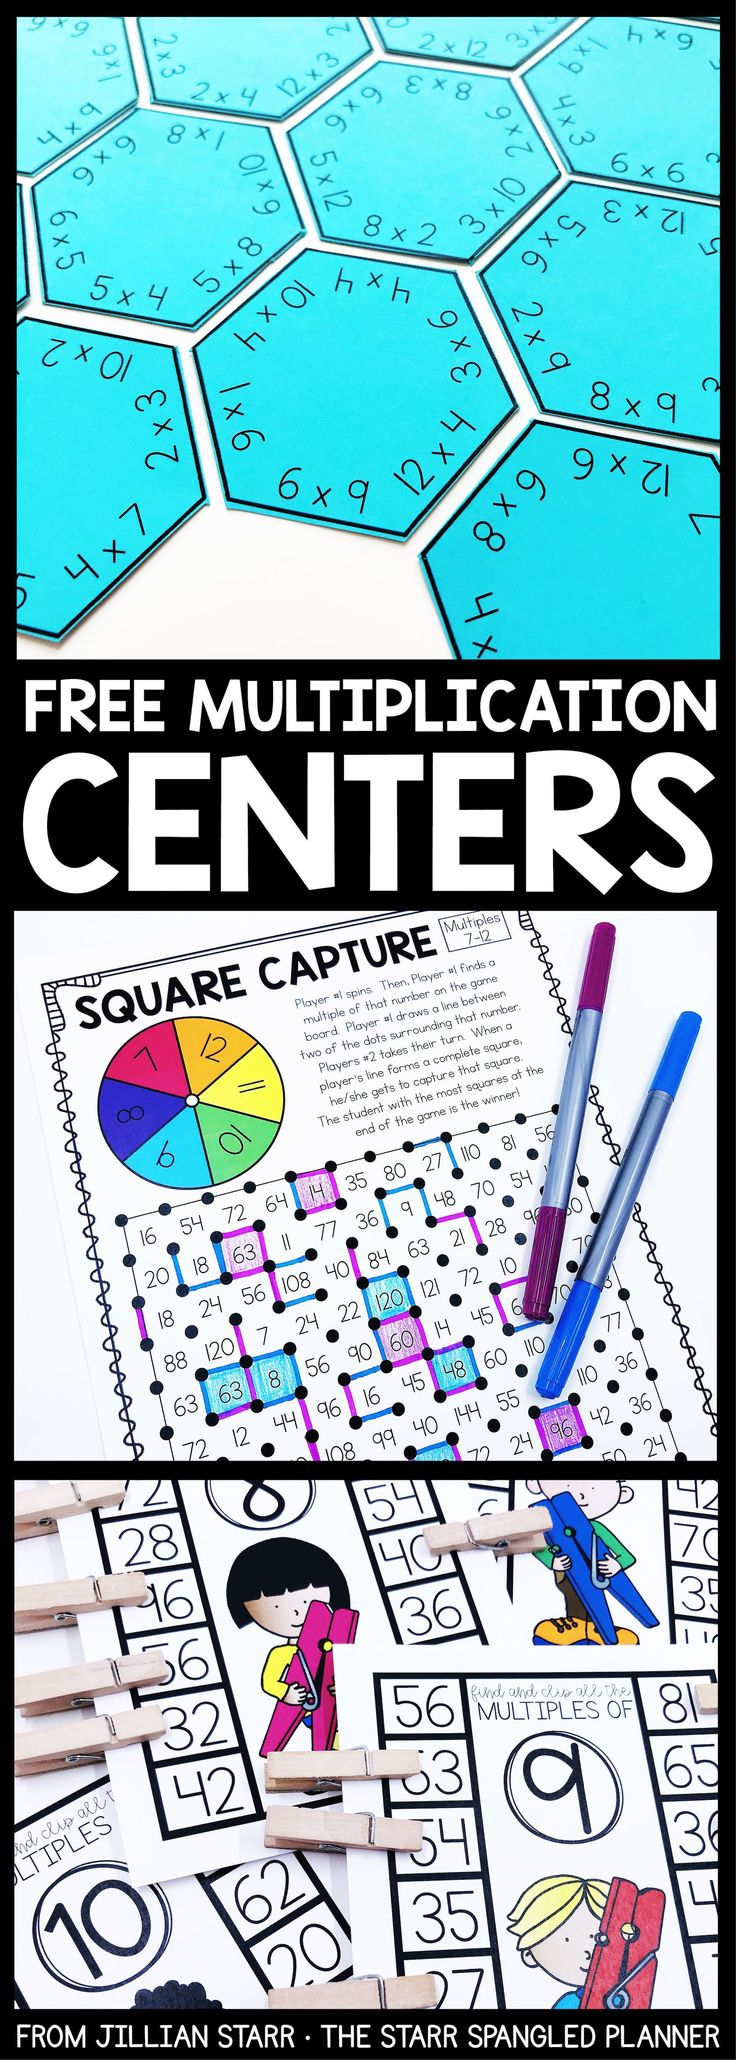 FREE Multiplication Centers to help your students memorize their multiplication facts and build fact fluency. A mix of printable games, logic puzzles, and hands on activities that are perfect for 2nd, 3rd and 4th grade math centers and stations! #mathlessons #mathgamesfor3rdgrade